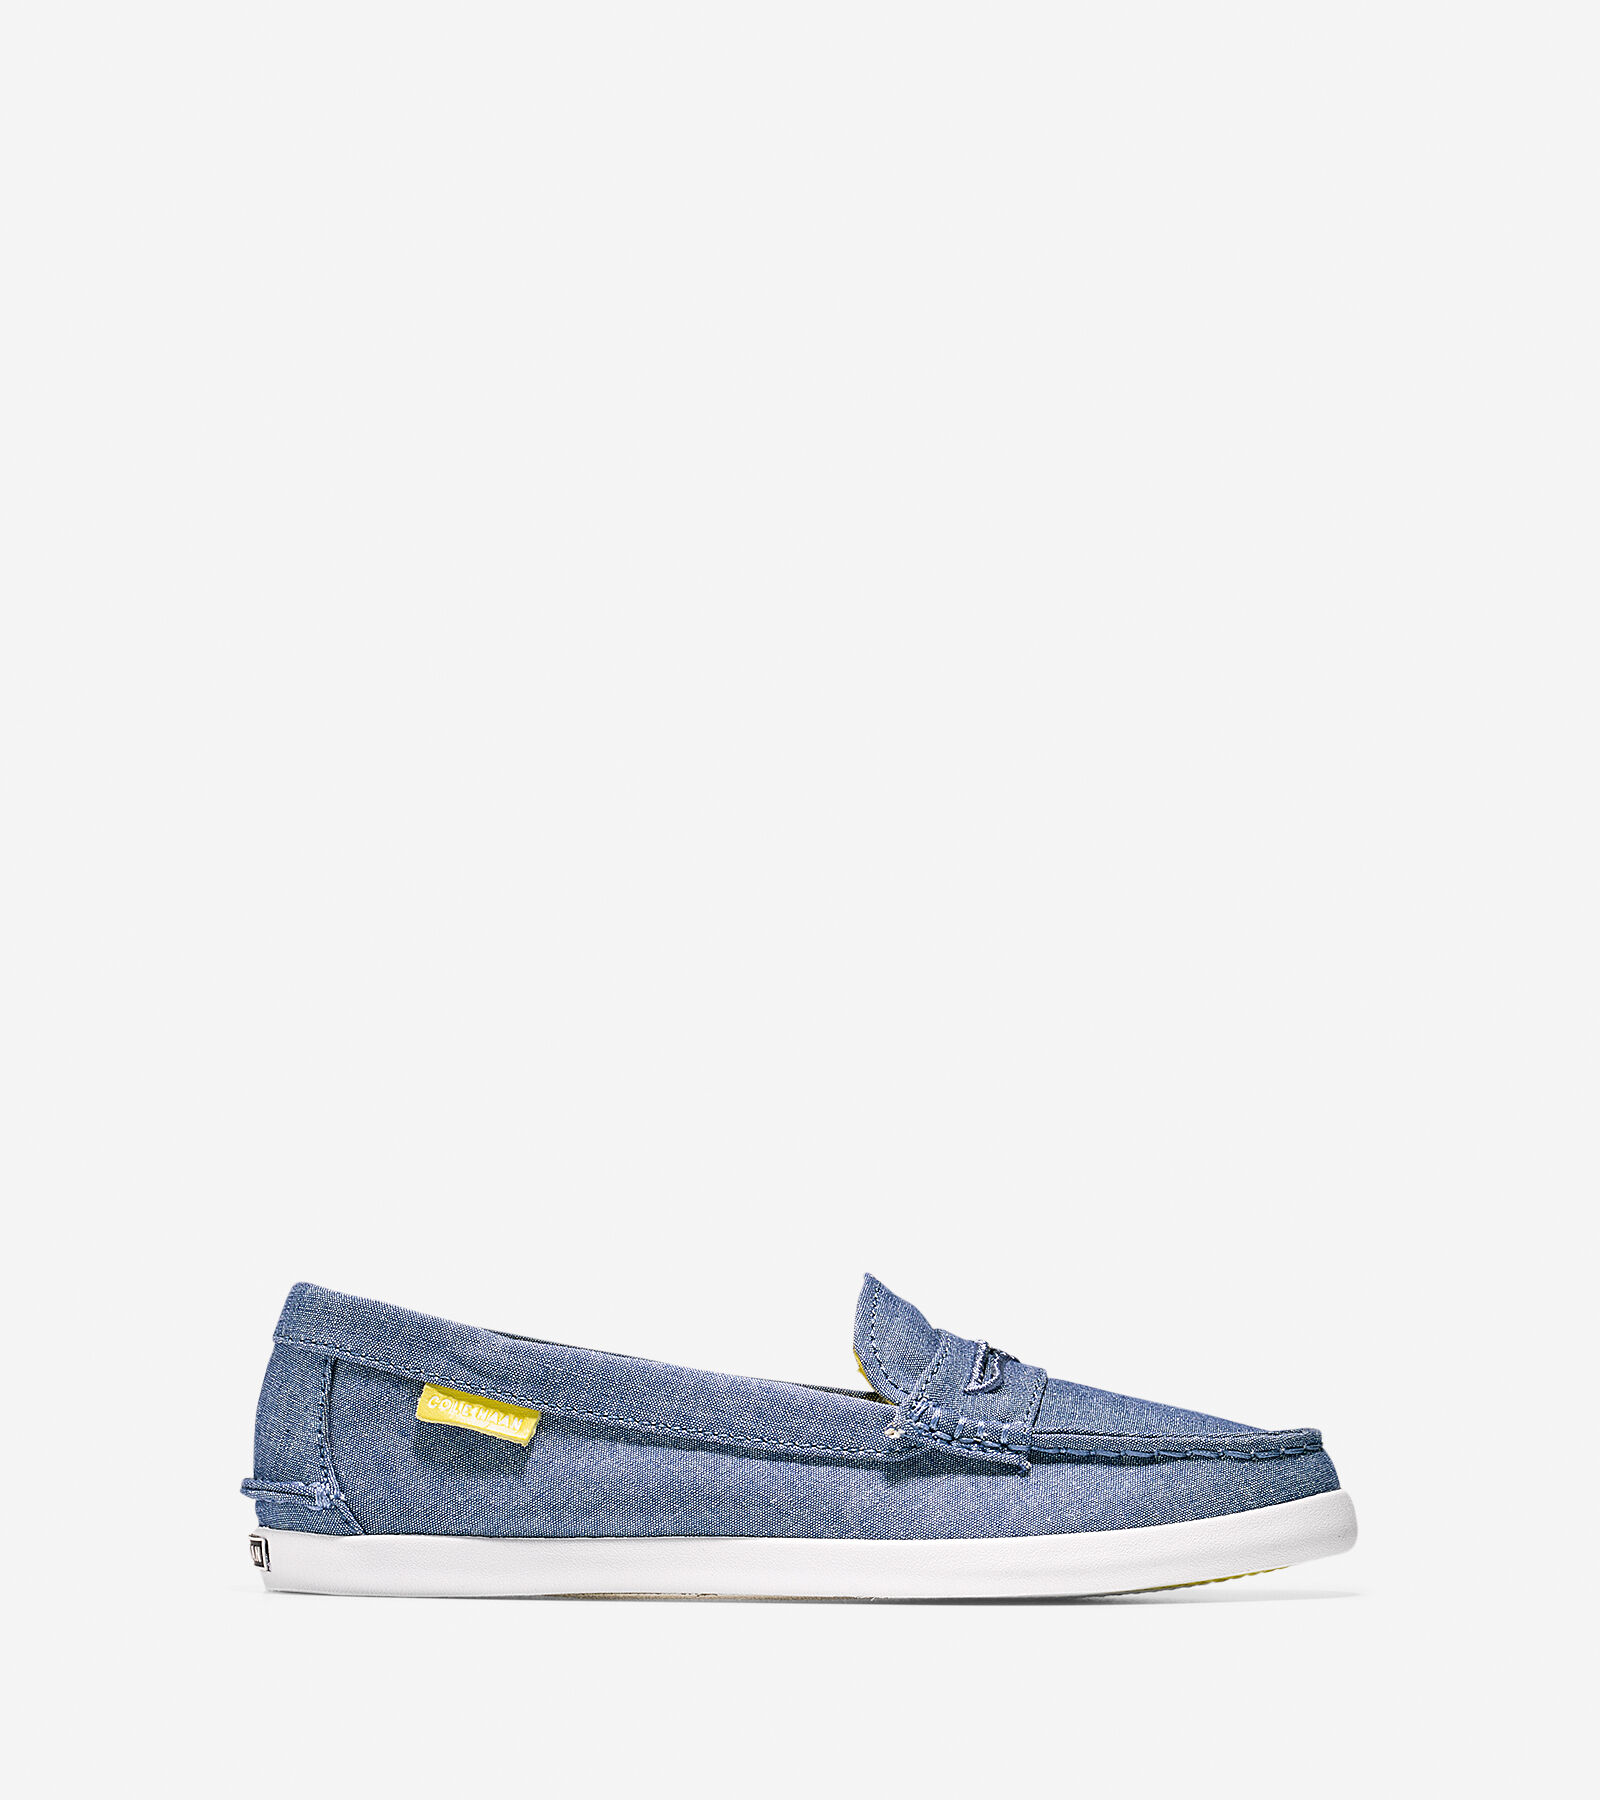 Womens Flats Haan Womens Cole Pinch Loafers 8 B Blue Flats black patent 2016 Sale Outlet